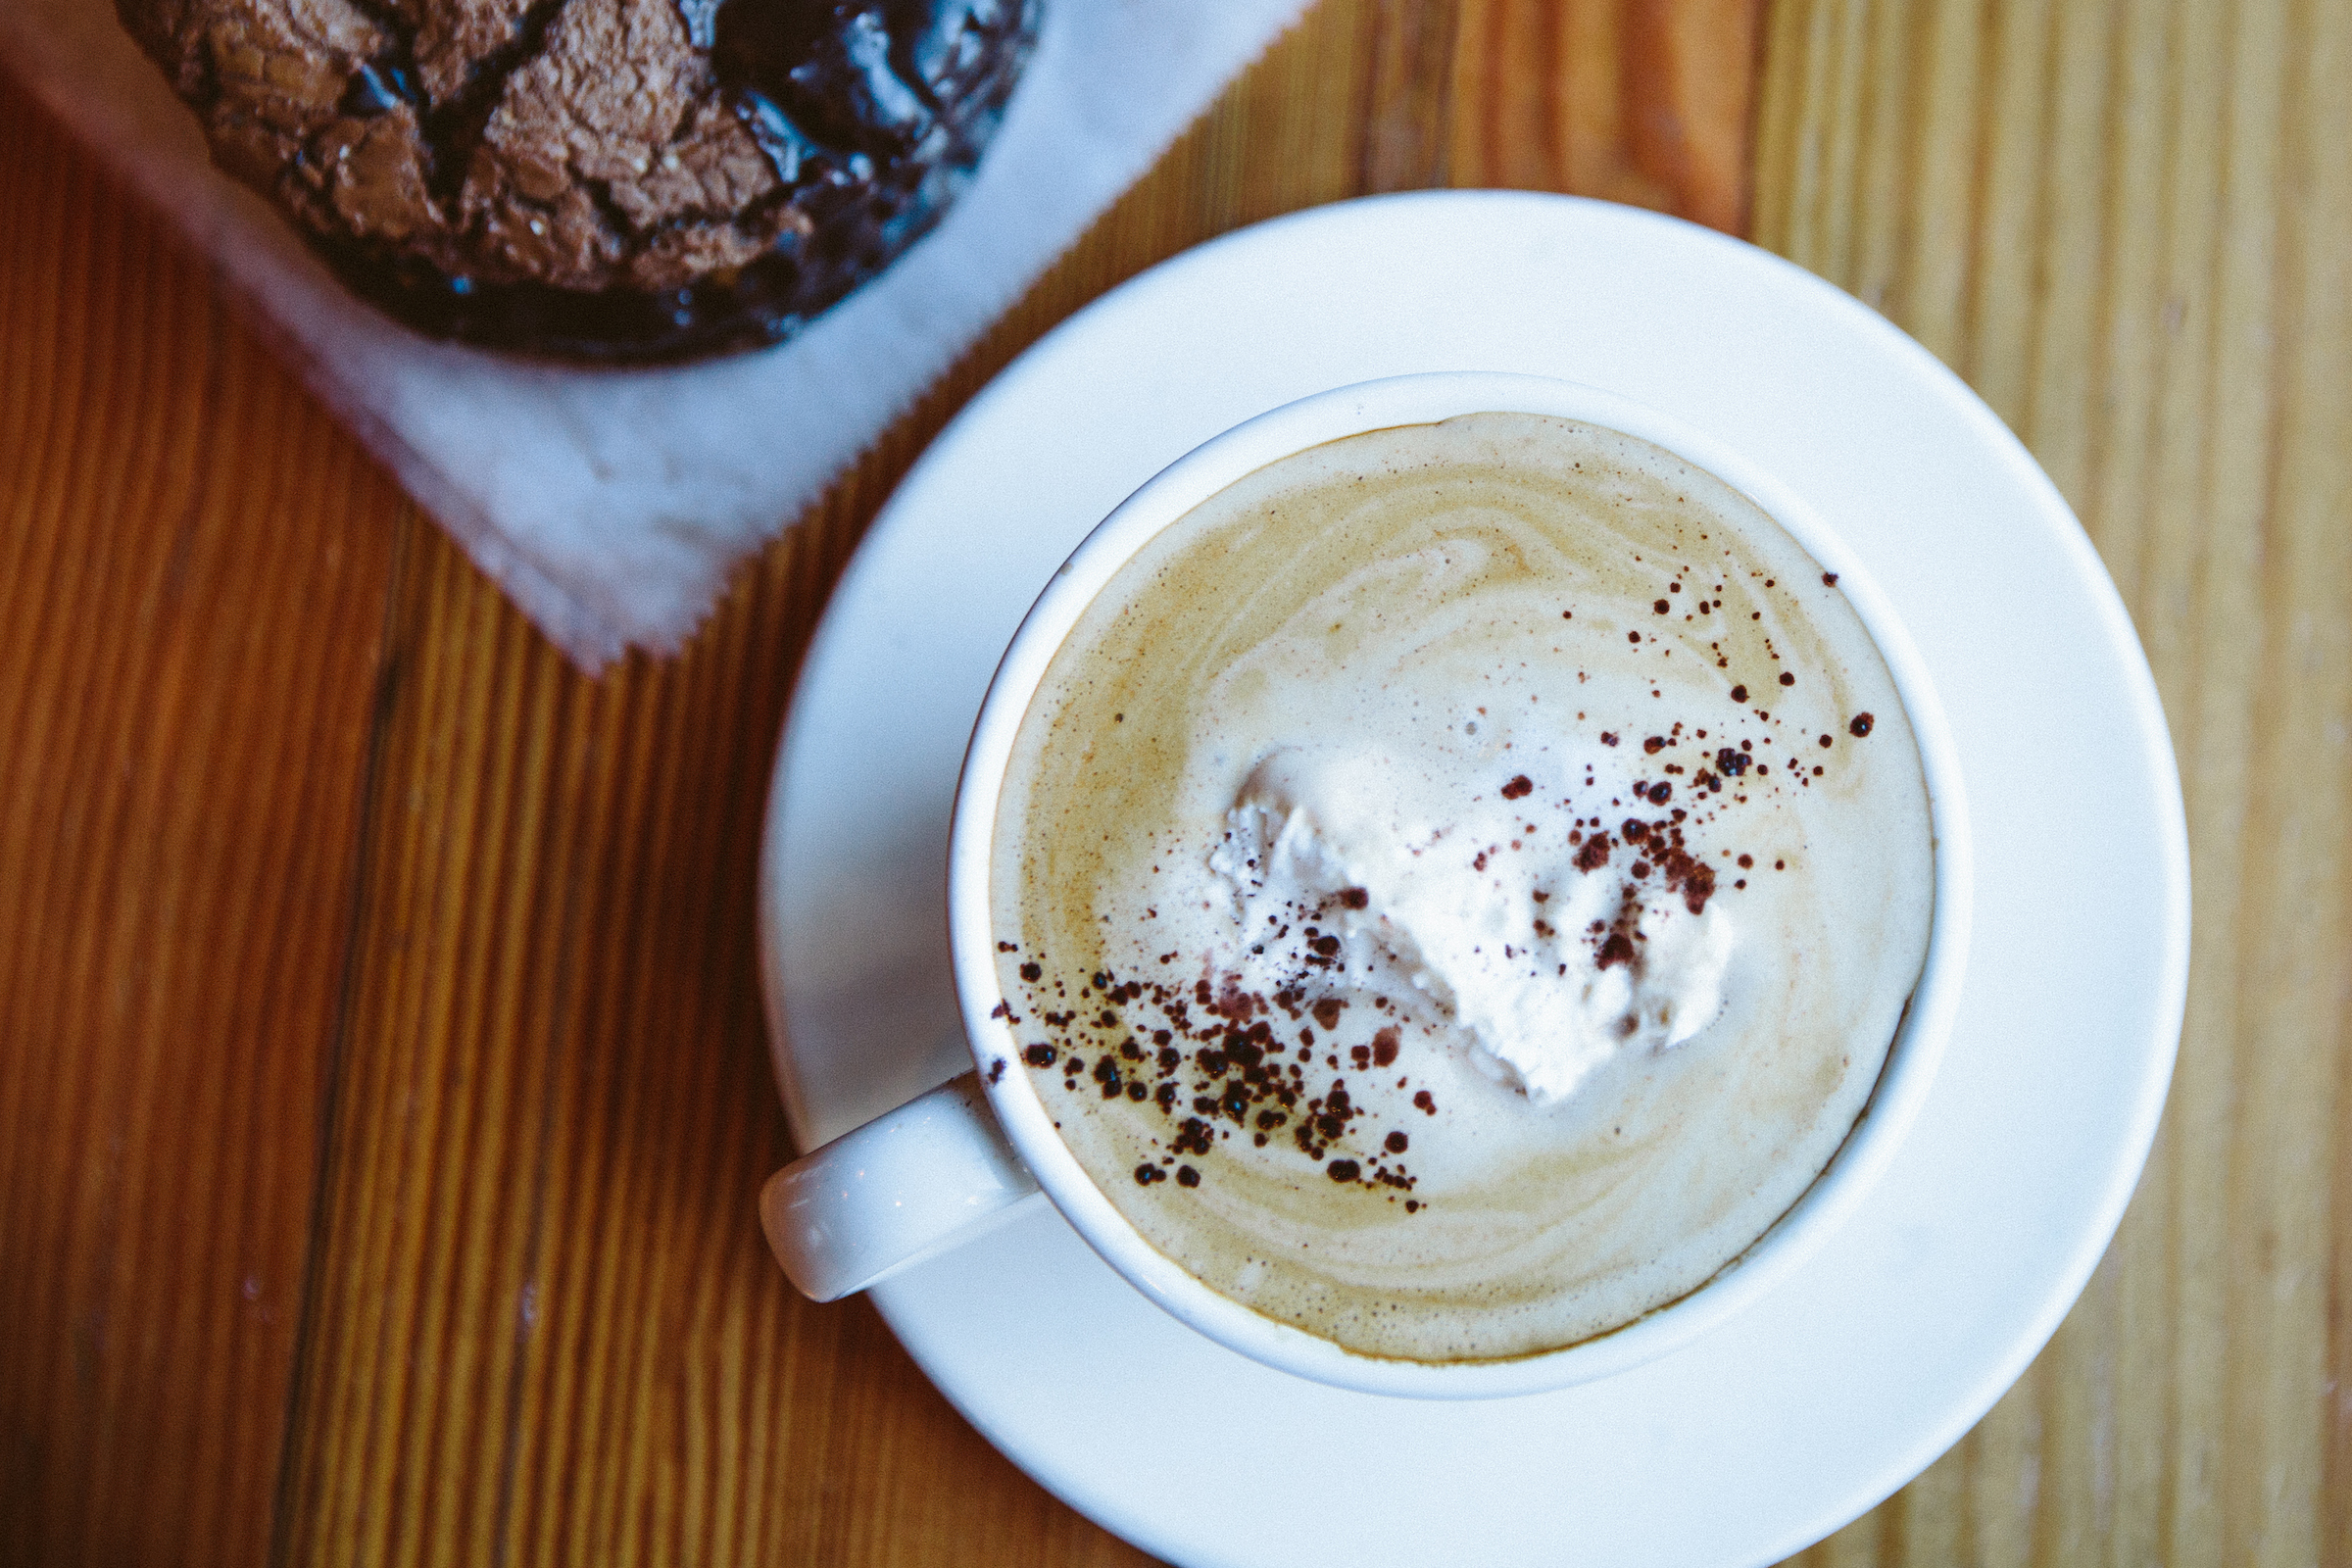 Beatrix Hot Chocolate in a mug with a sprinkling of cinnamon on top